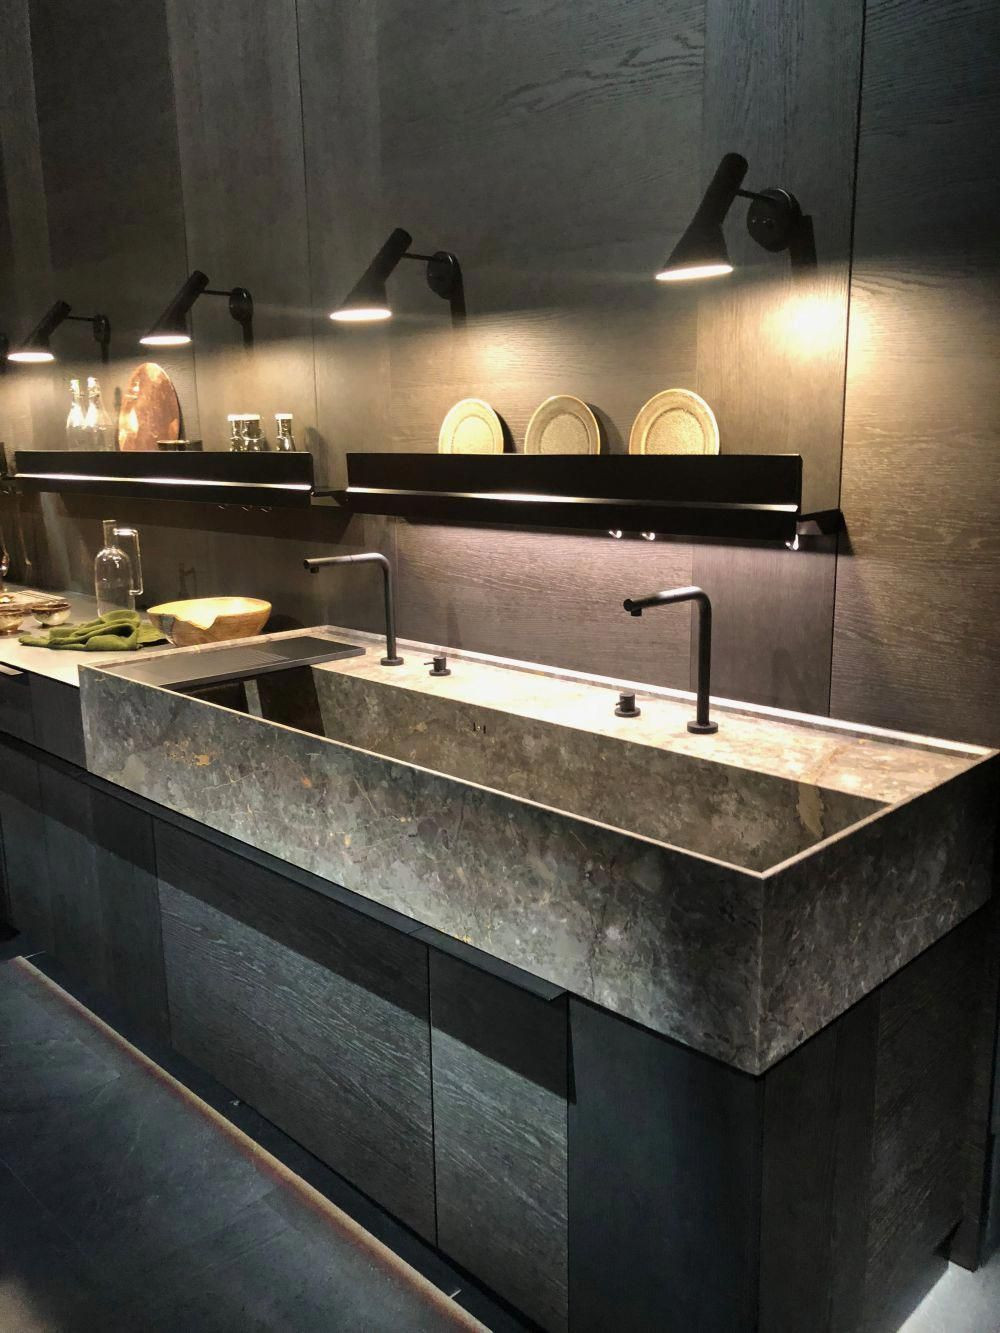 Large kitchen sink EuroCucina 2018 at Salone del mobile